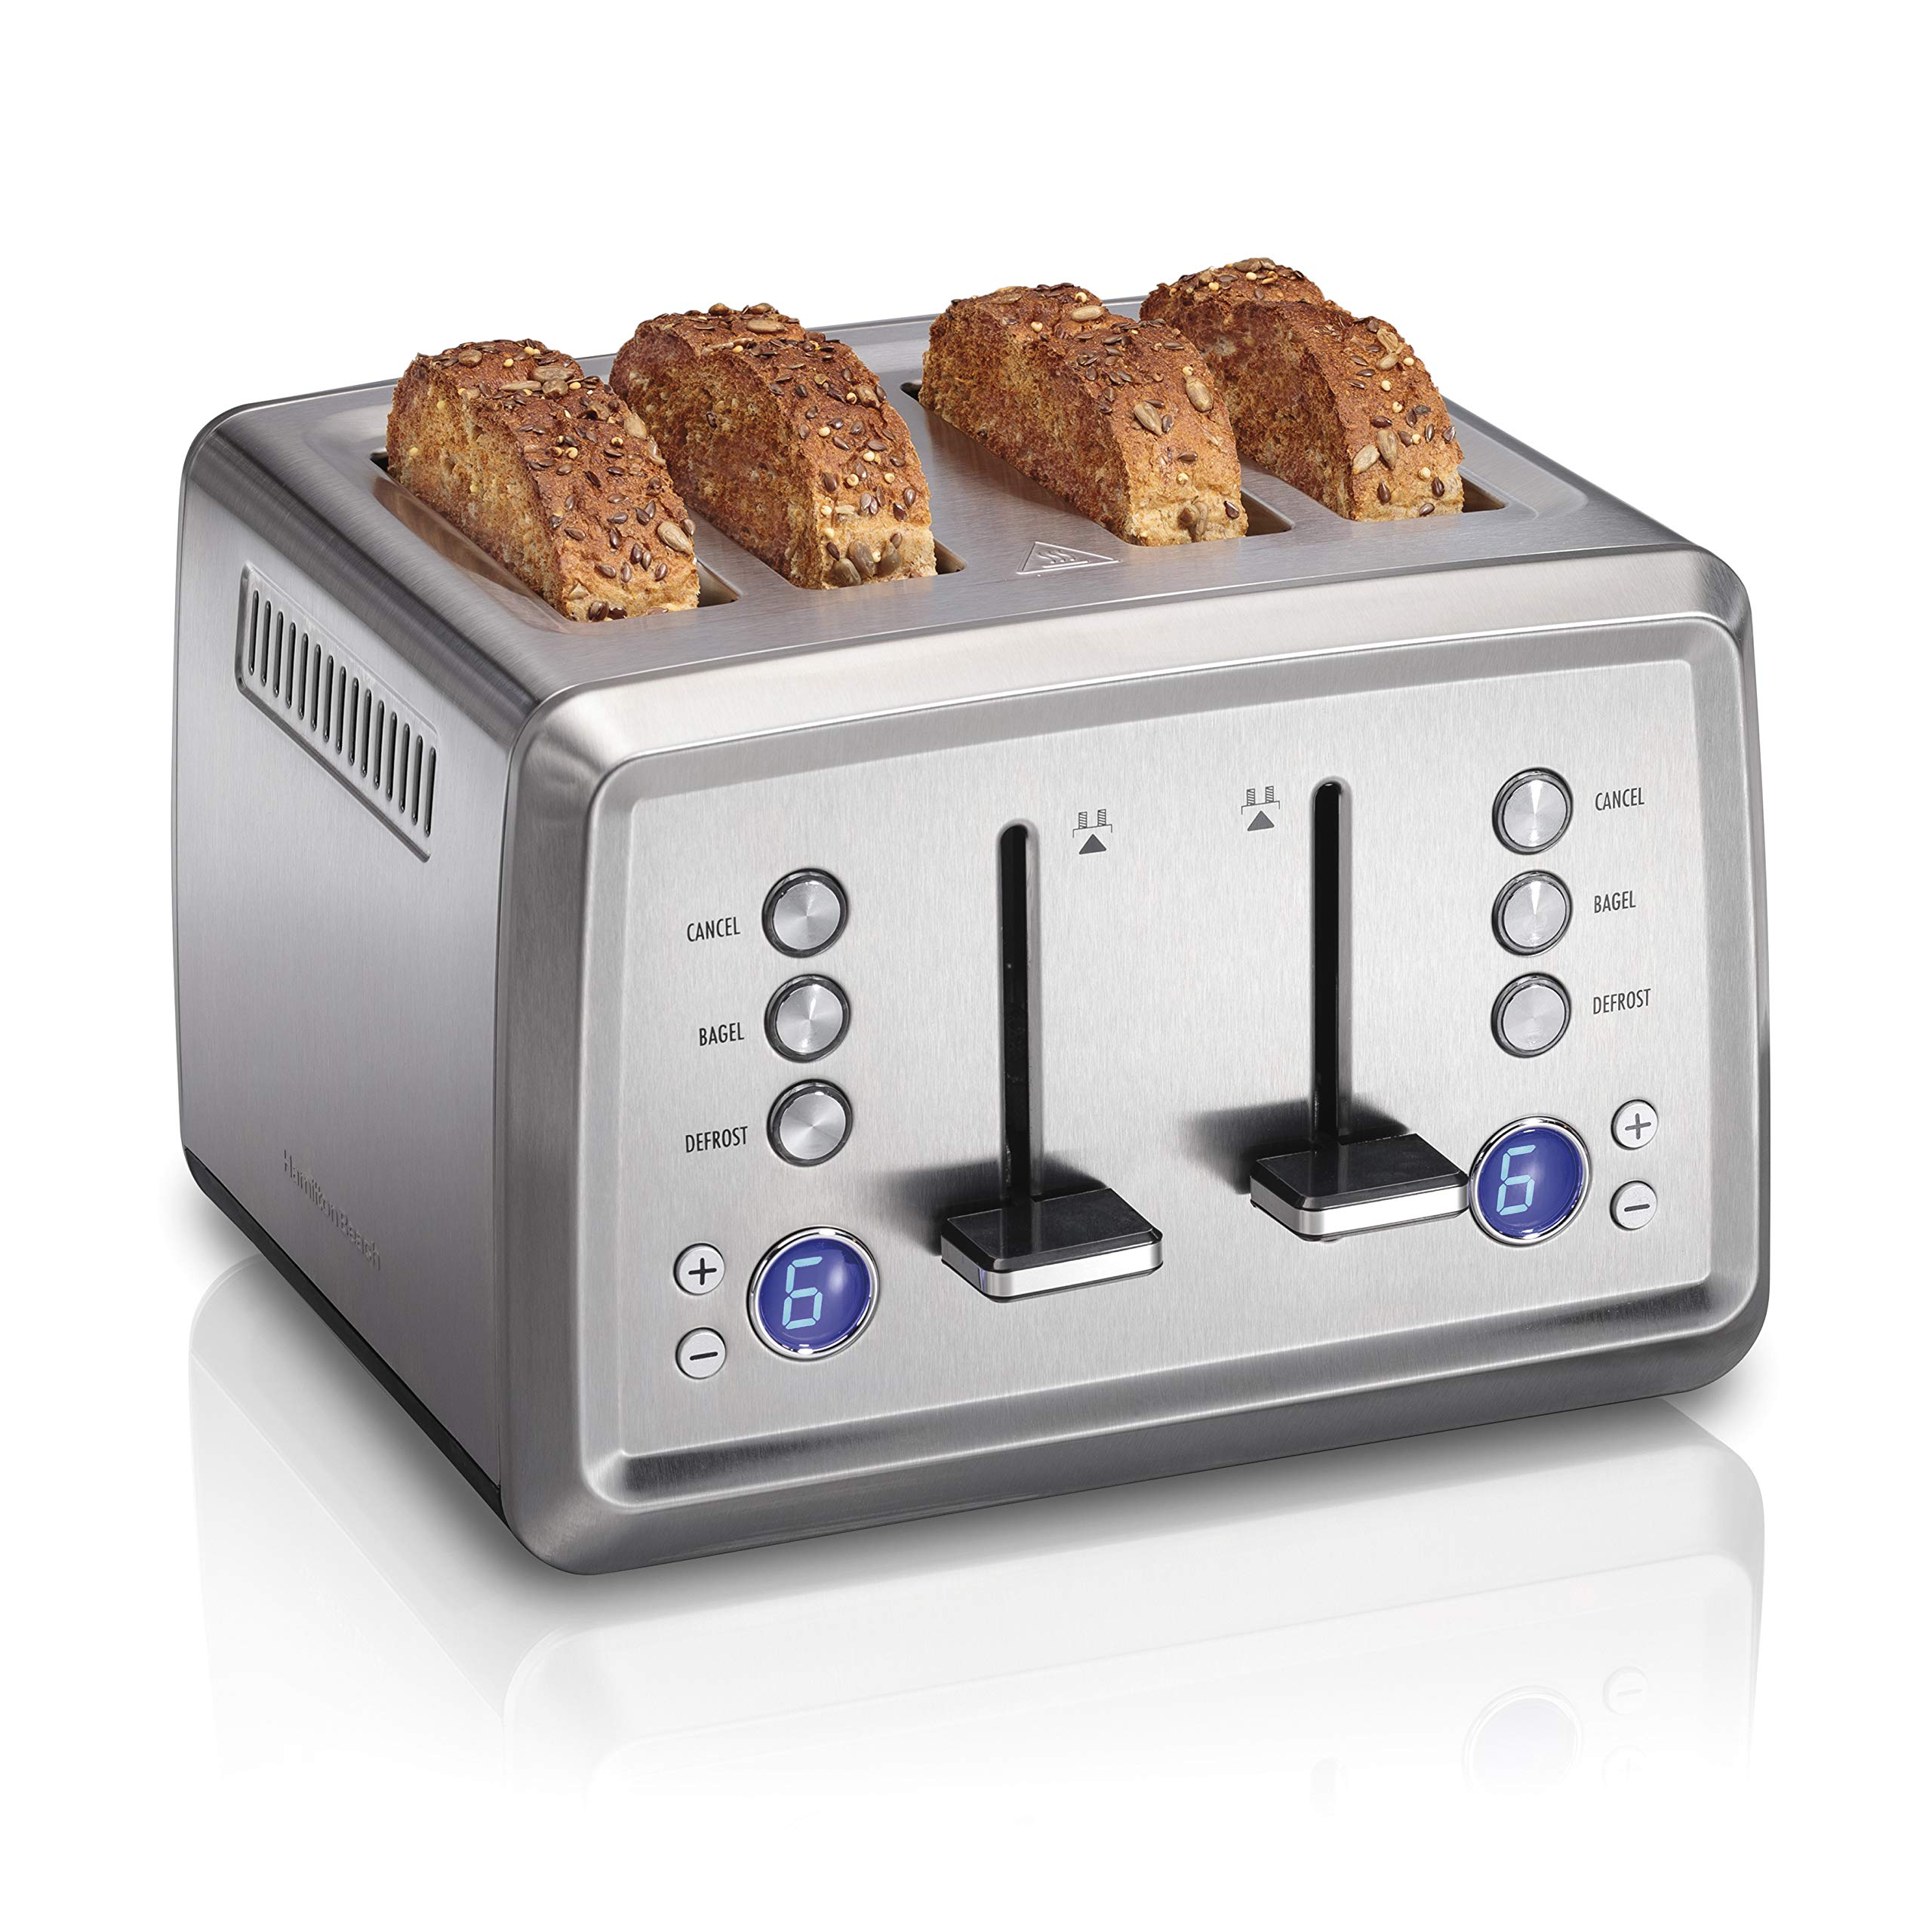 Hamilton Beach Digital 4 Slice Extra-Wide Slot Stainless Steel Toaster with Bagel & Defrost Settings, Toast Boost, Slide-Out Crumb Tray, Auto-Shutoff and Cancel Button (24796) by Hamilton Beach